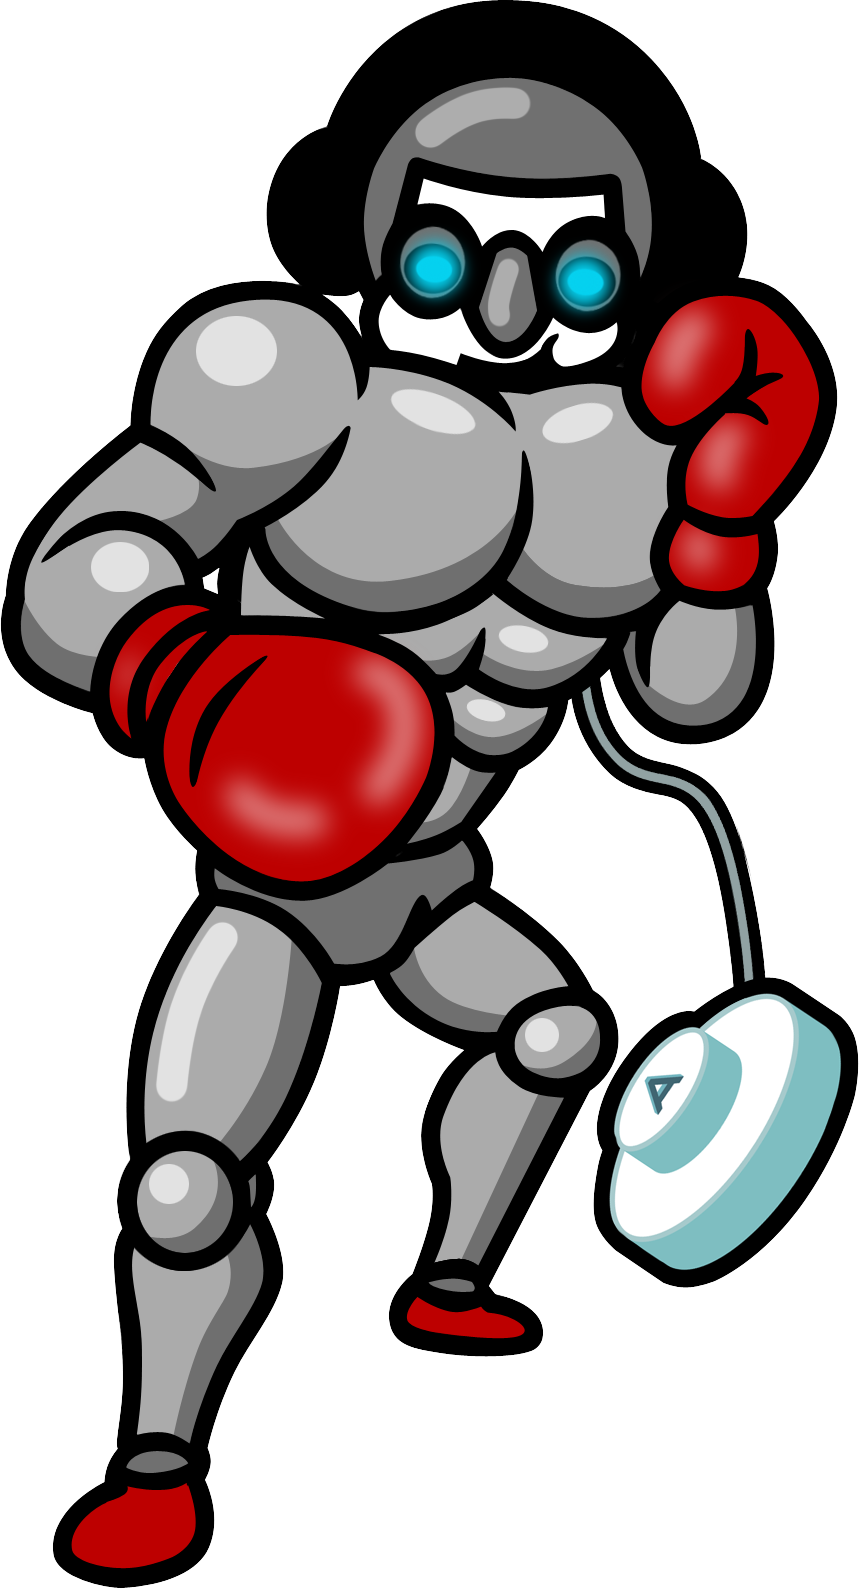 Saw doll png. Image muscle rhythm heaven